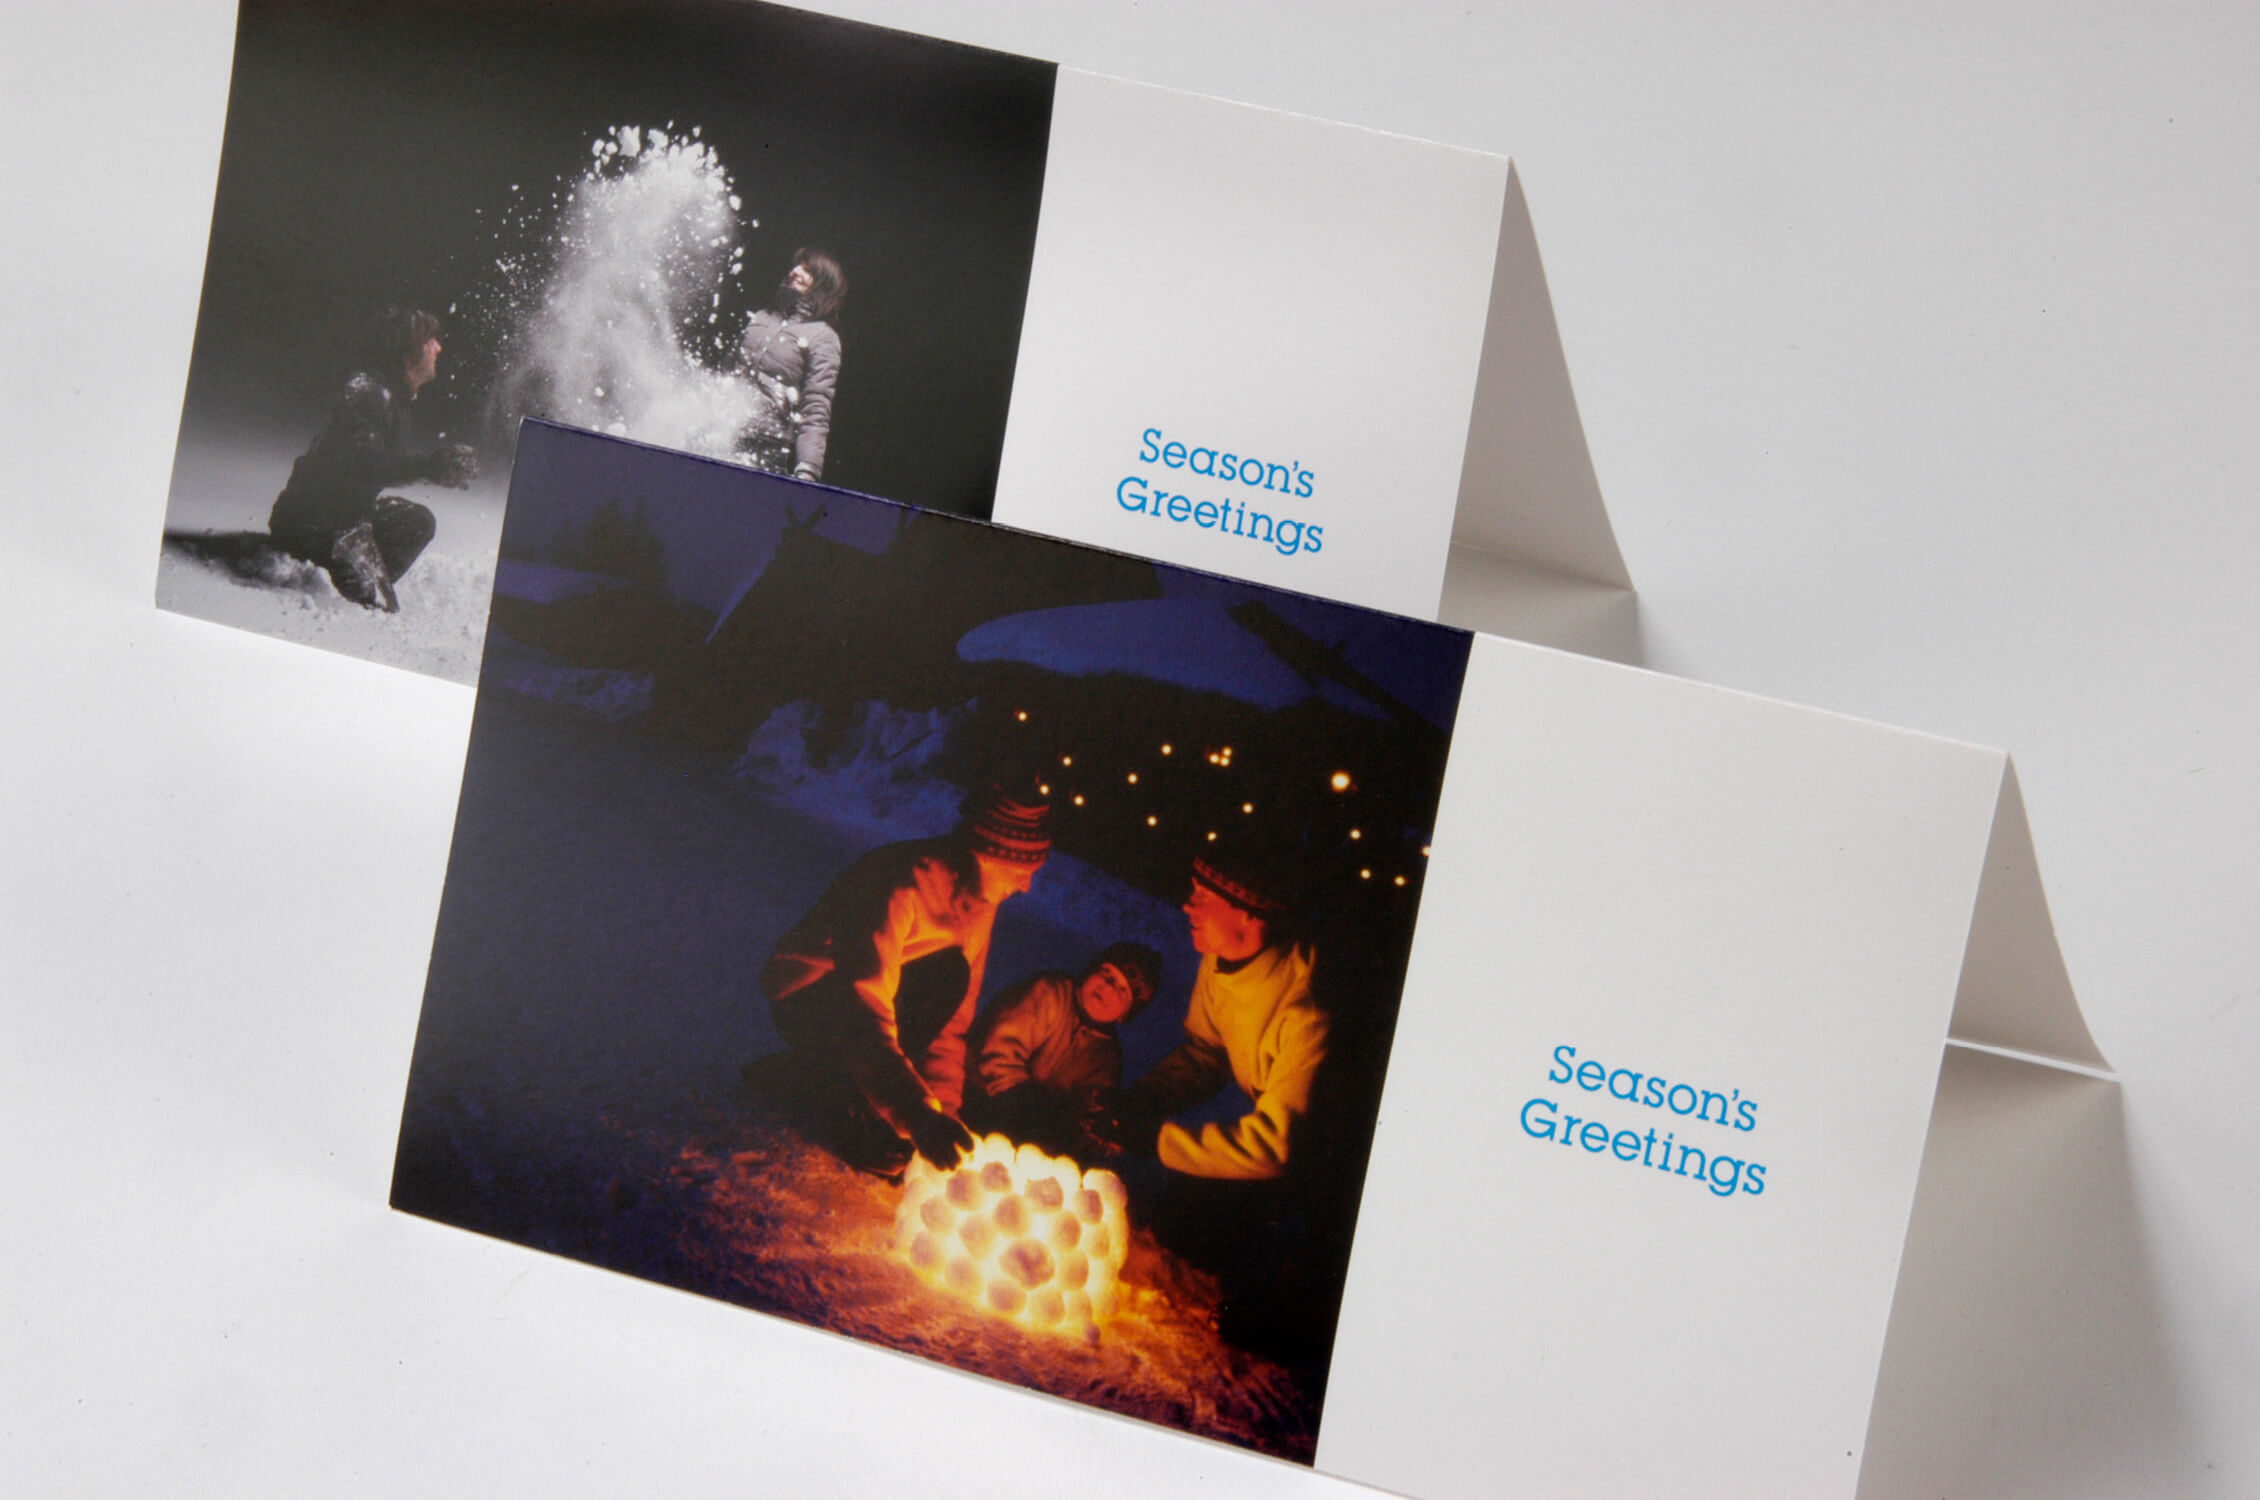 getty images direct mail holiday image 01